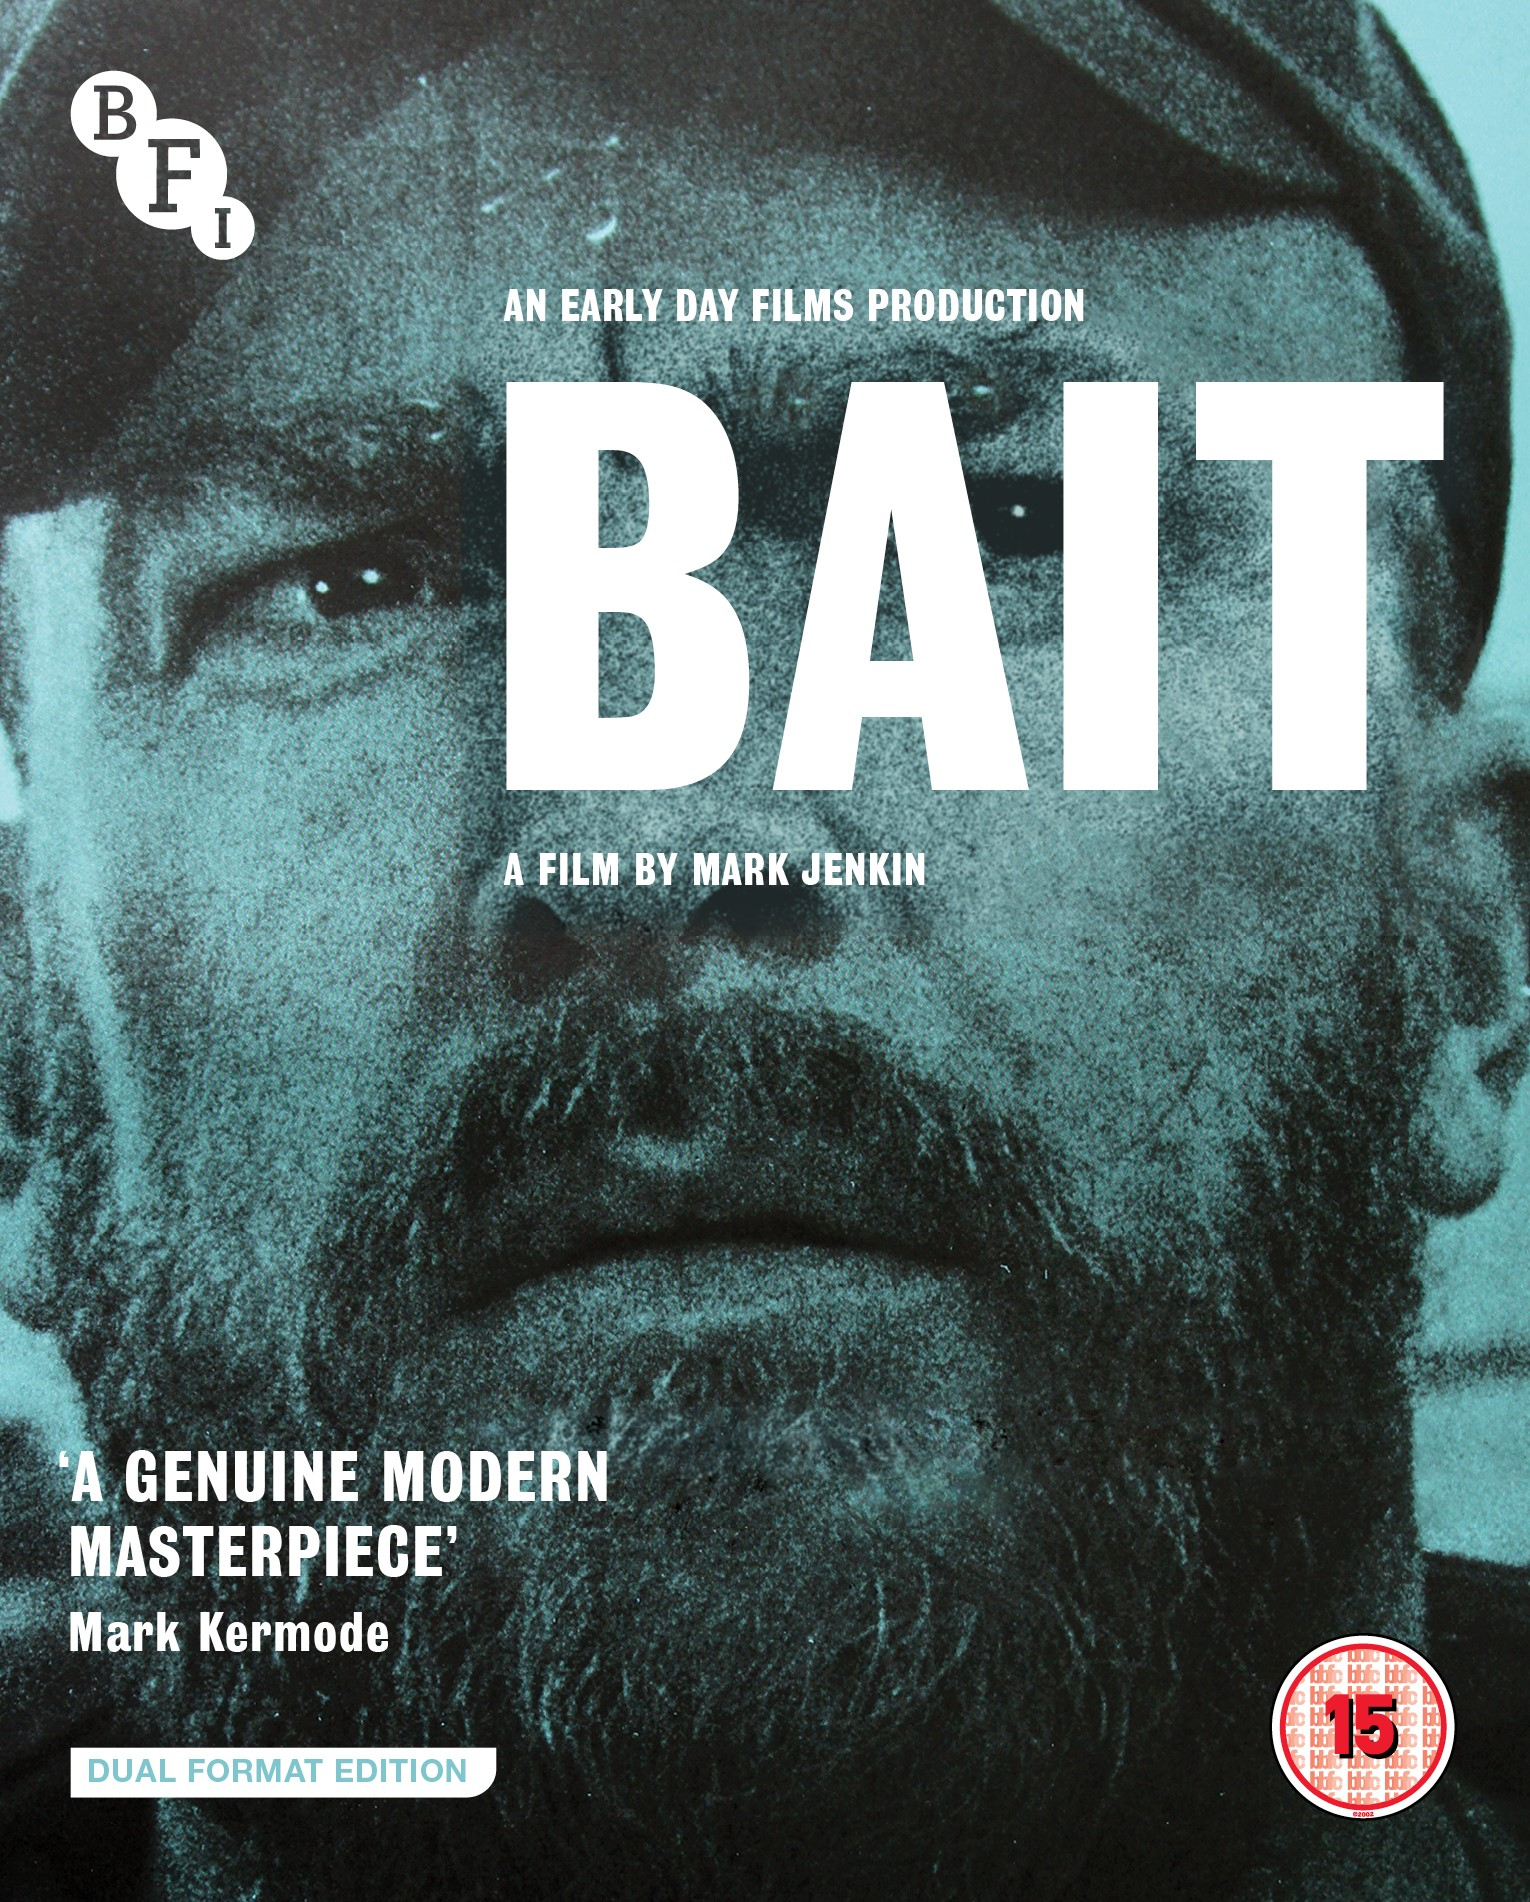 Buy Bait (Dual Format Edition)